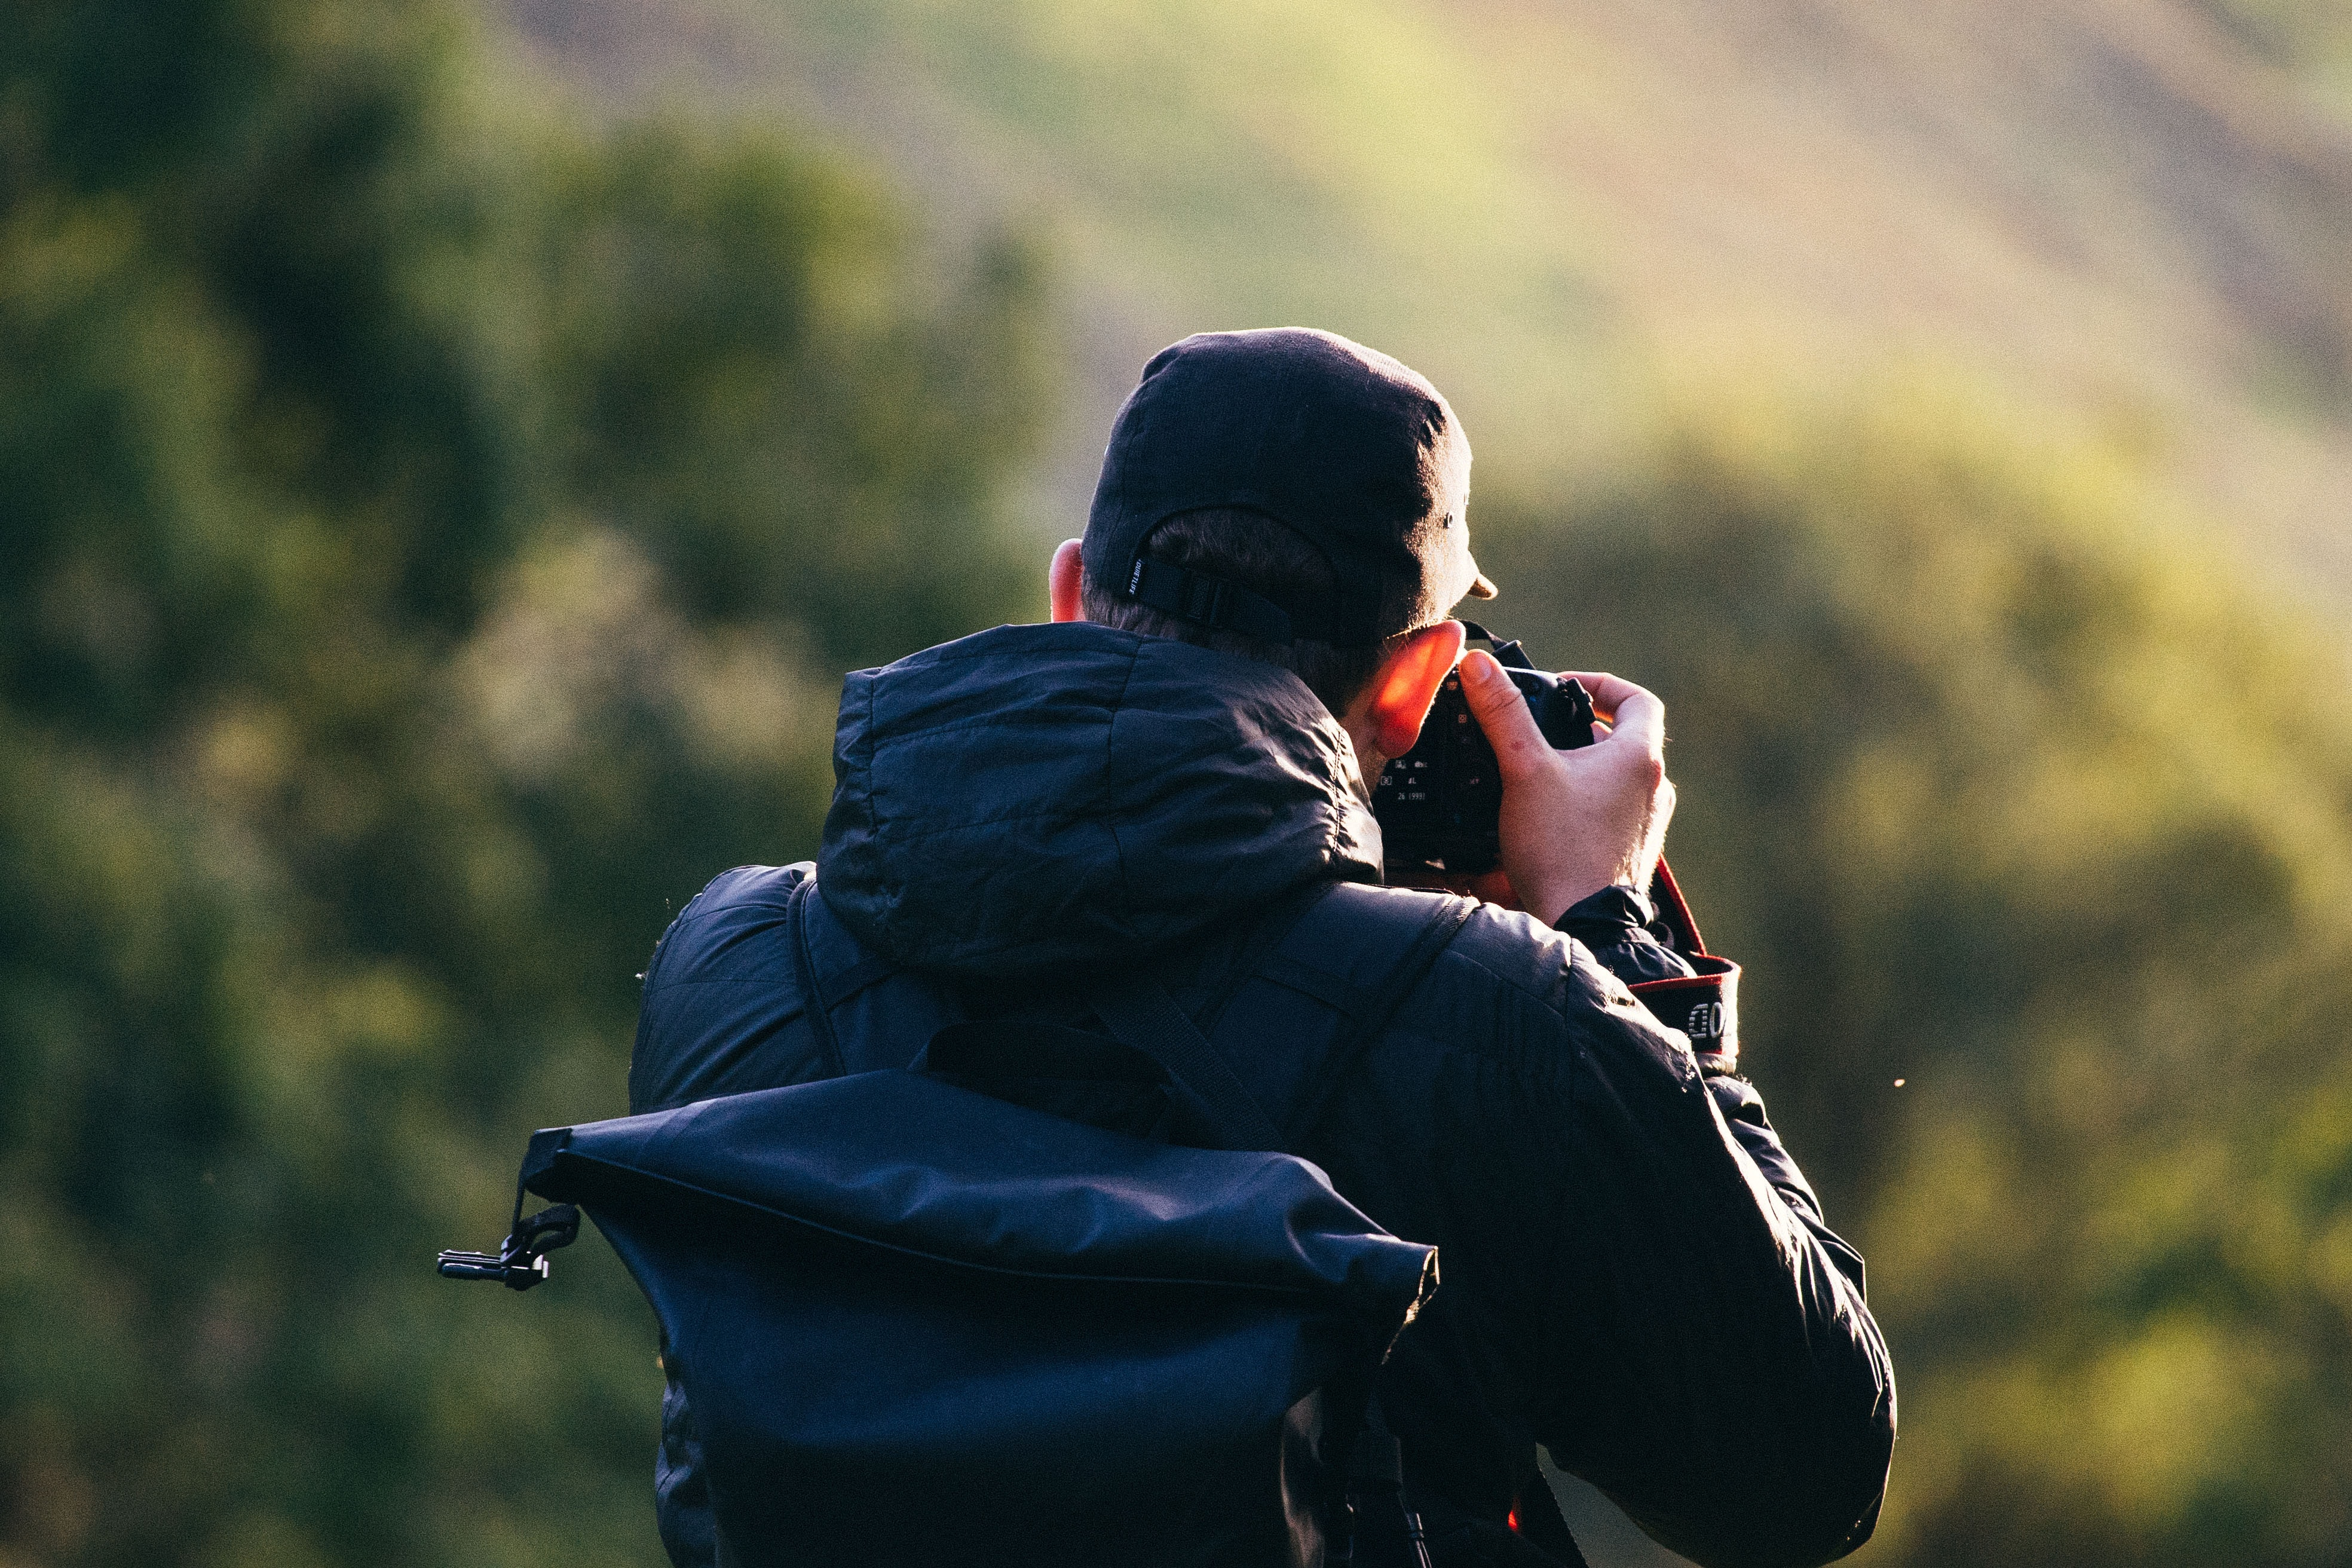 A man taking a picture of grassy mountains in Snowdon, Wales